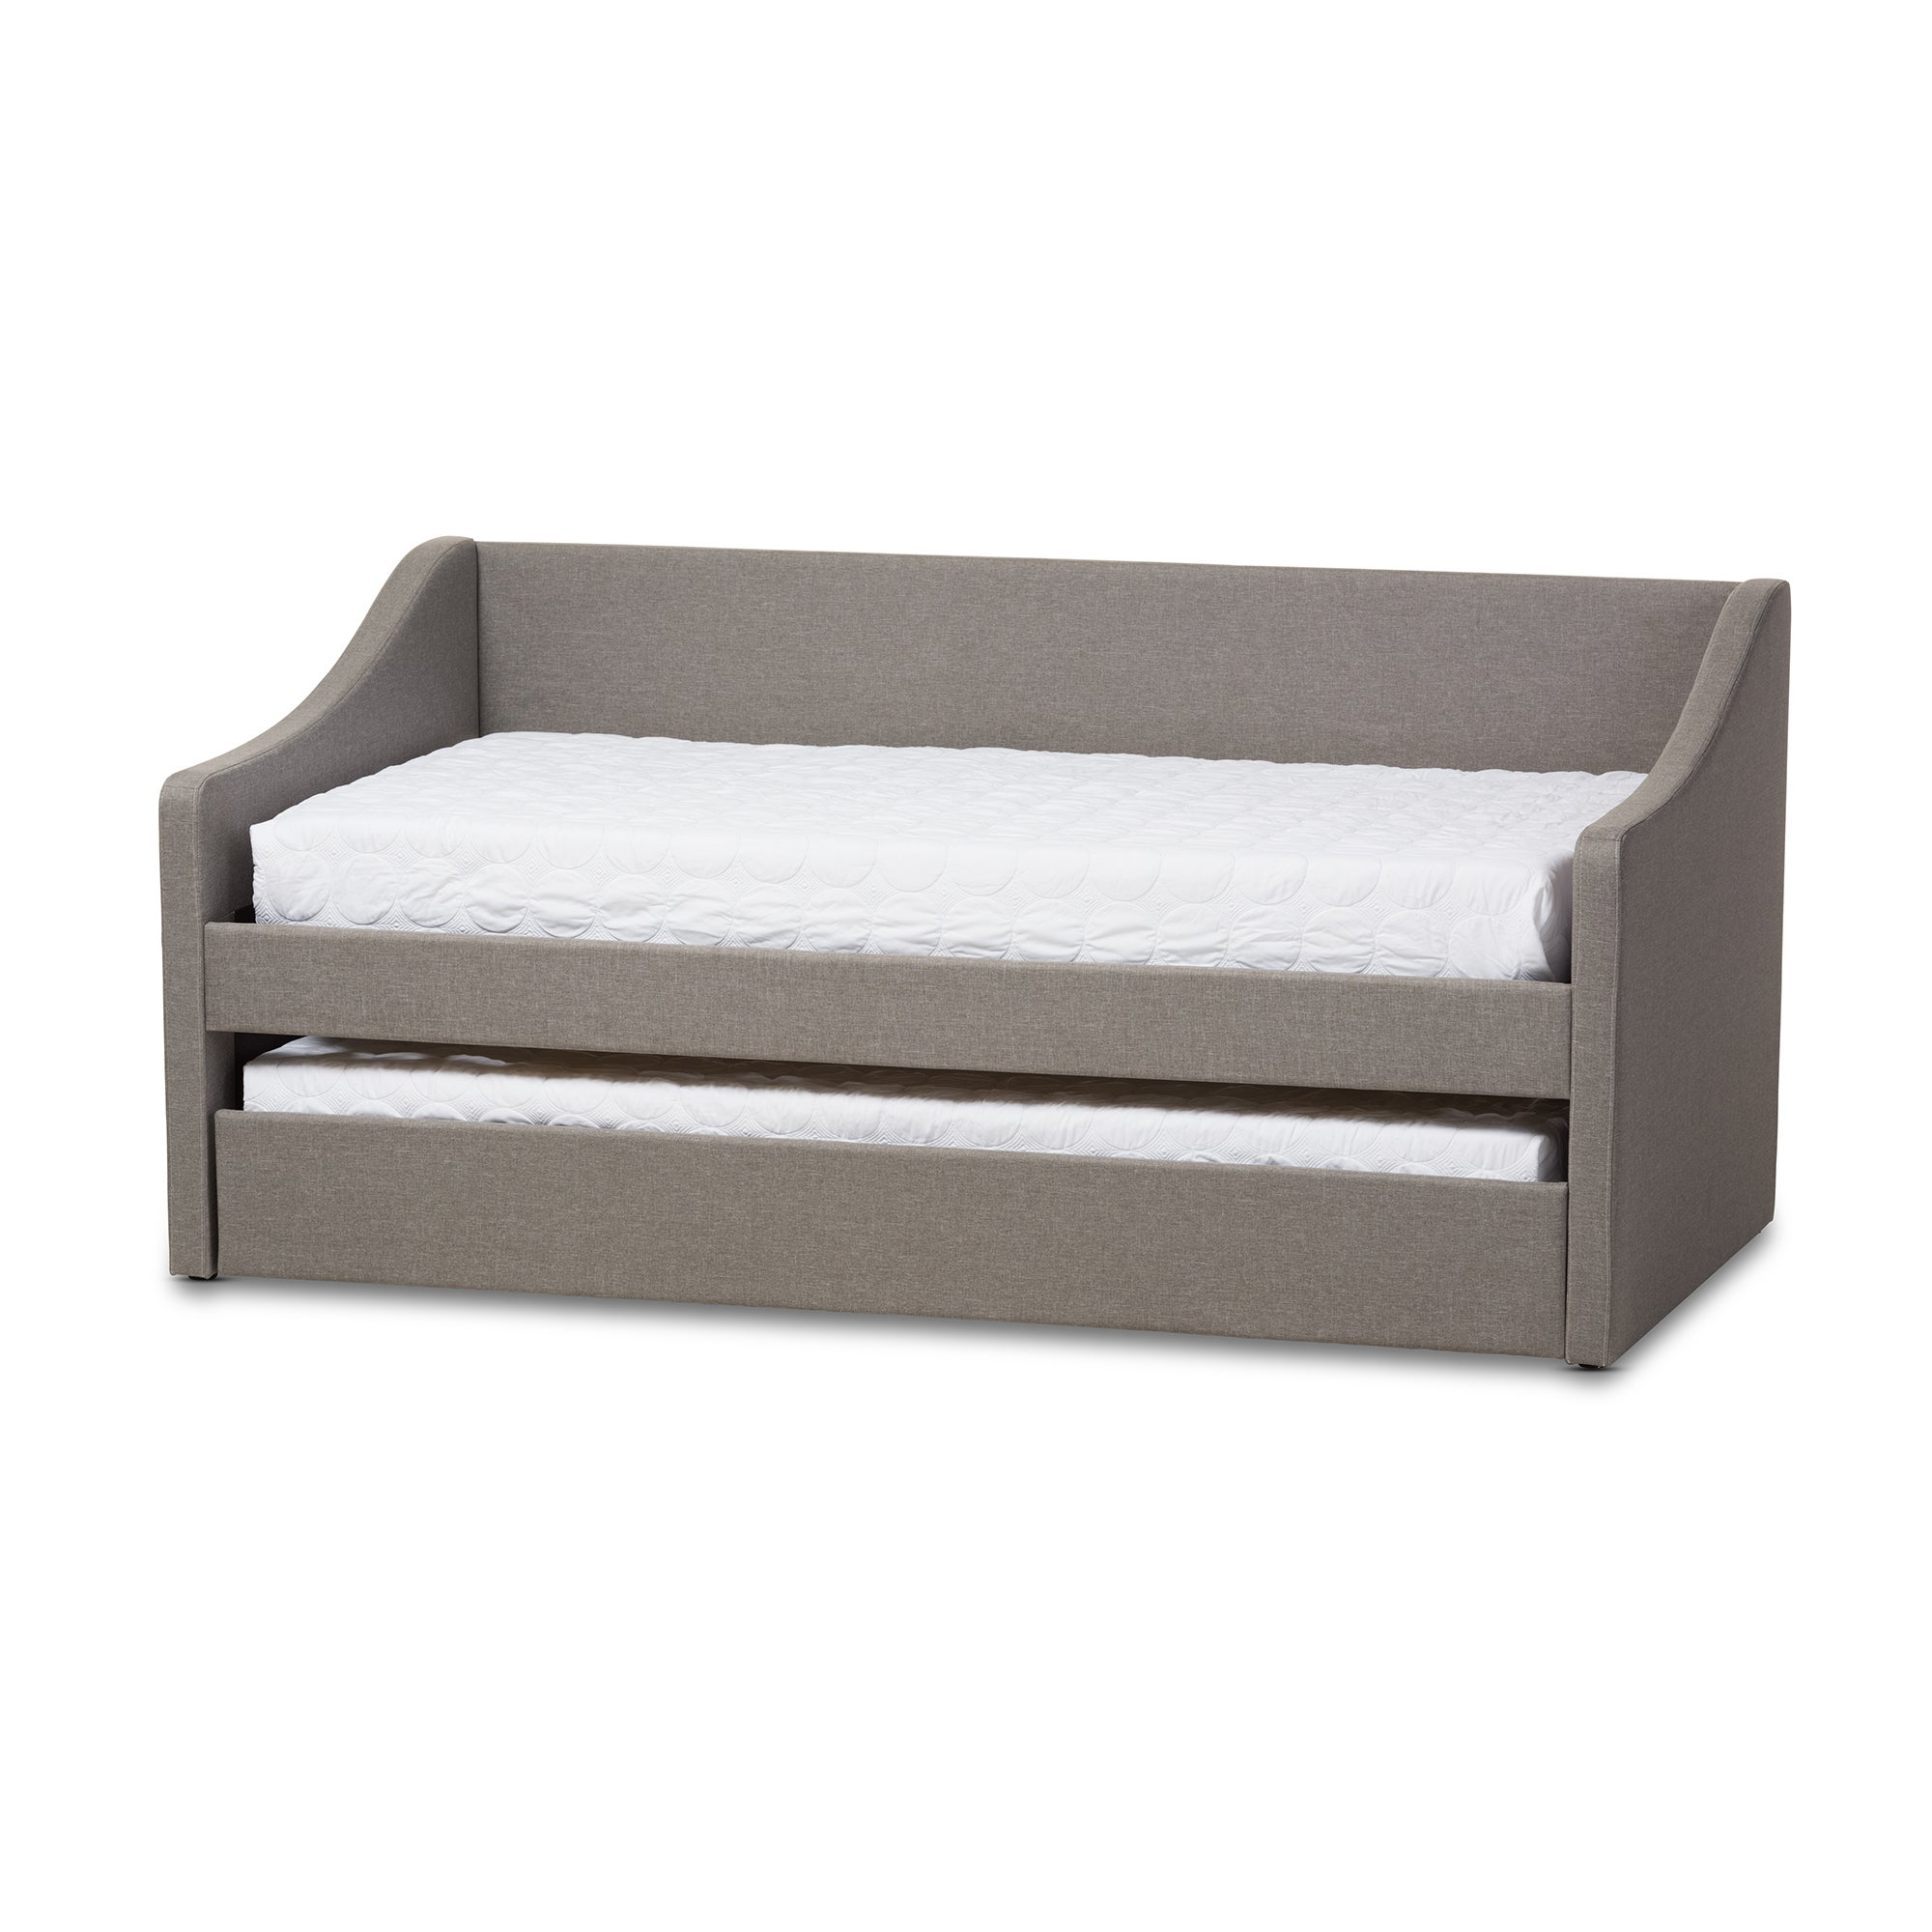 Ordinaire Shop Baxton Studio Kallikrates Modern Daybed With Trundle Bed   Free  Shipping Today   Overstock.com   12808323